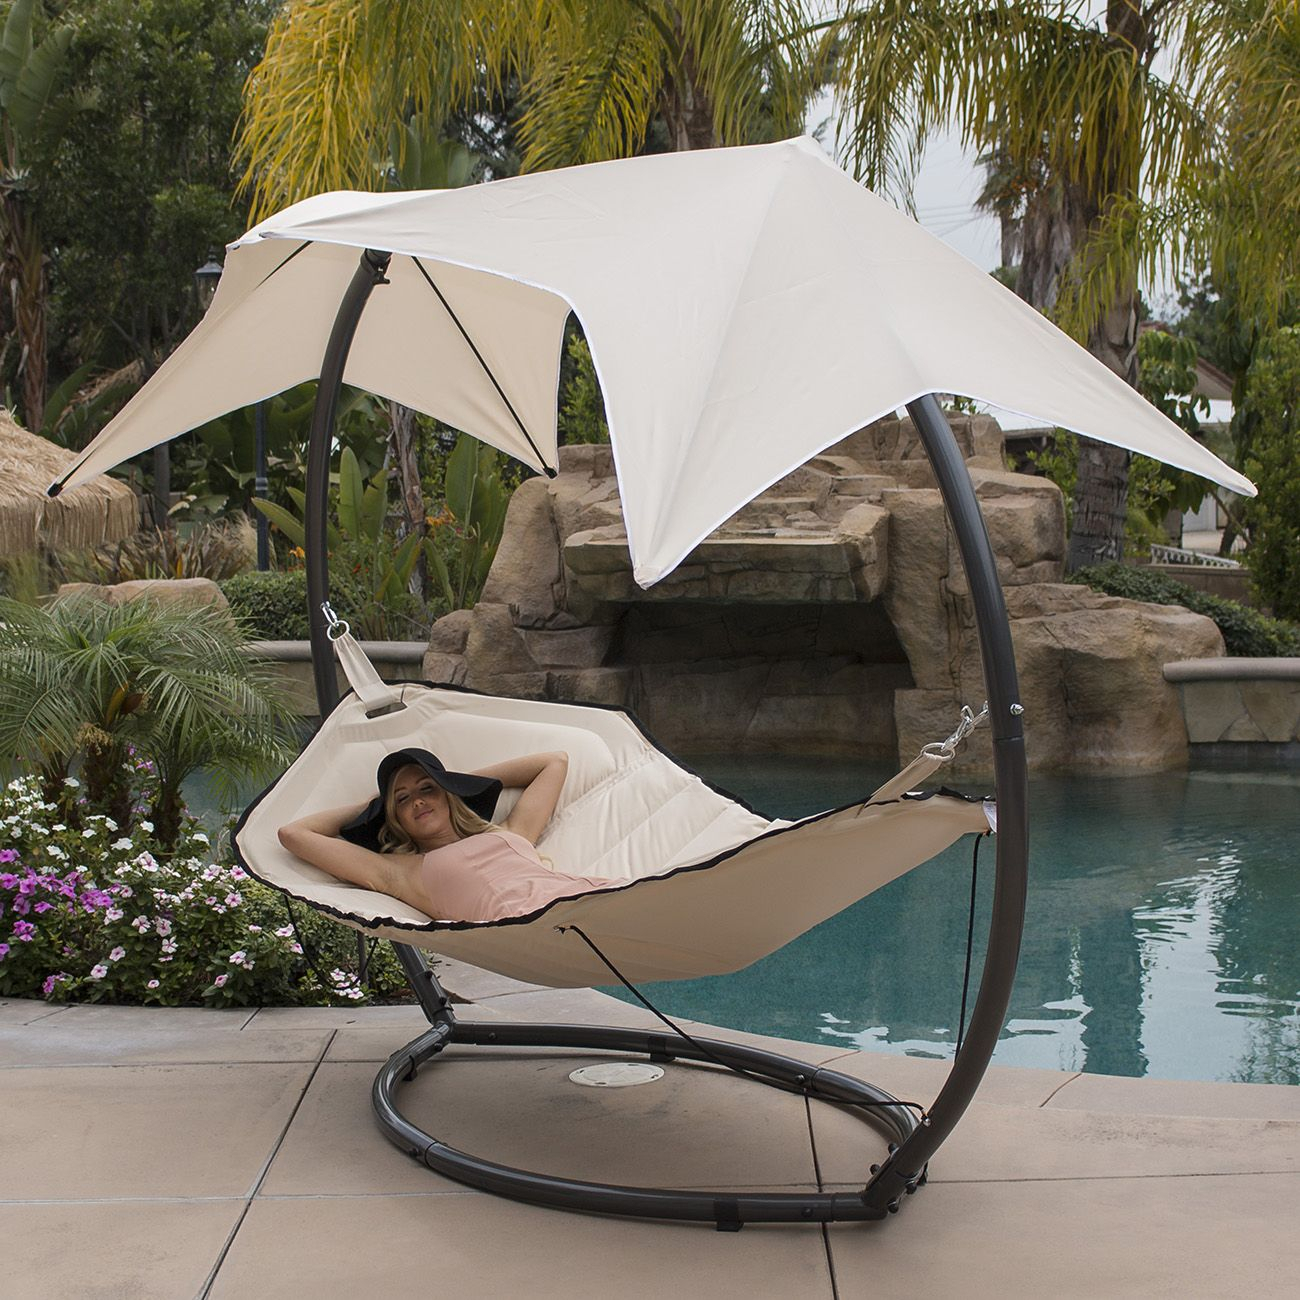 Belleze Belleze Patio Hammock W/ Sunroof Canopy Outdoor With Regard To Garden Leisure Outdoor Hammock Patio Canopy Rocking Chairs (View 5 of 25)